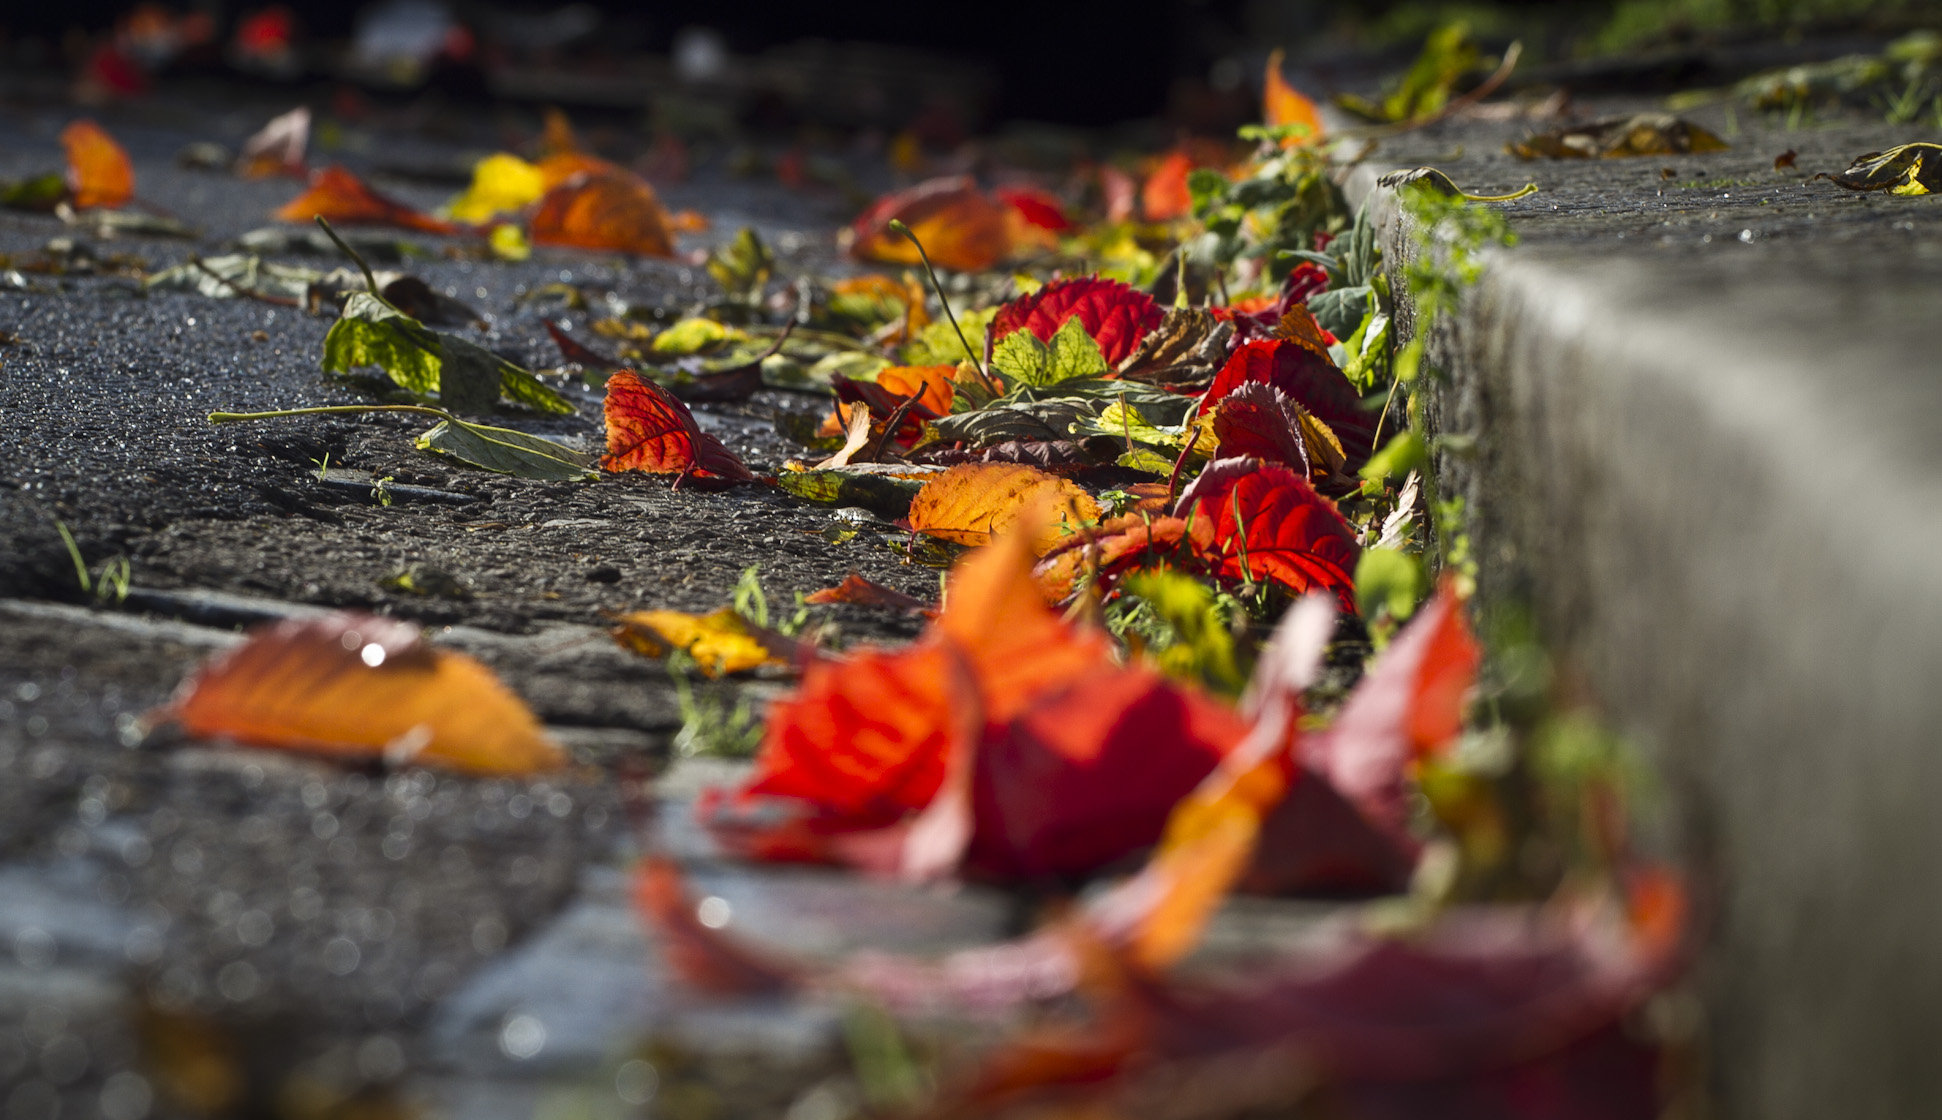 Autumn in the gutter, London